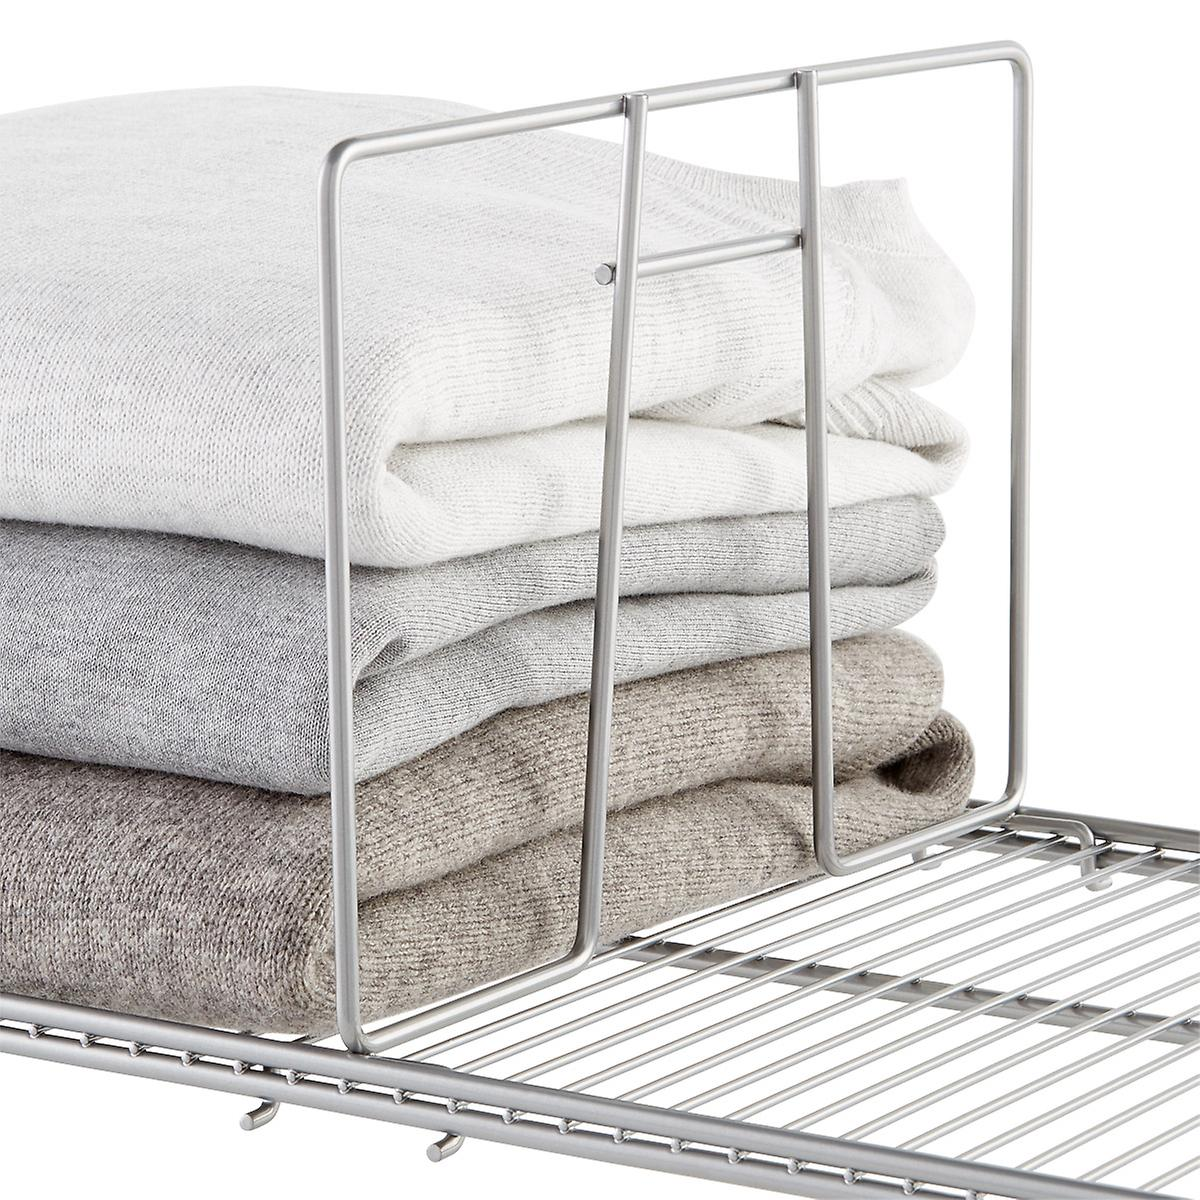 Wire Shelving & Ventilated Metal Wire Shelves | The Container Store